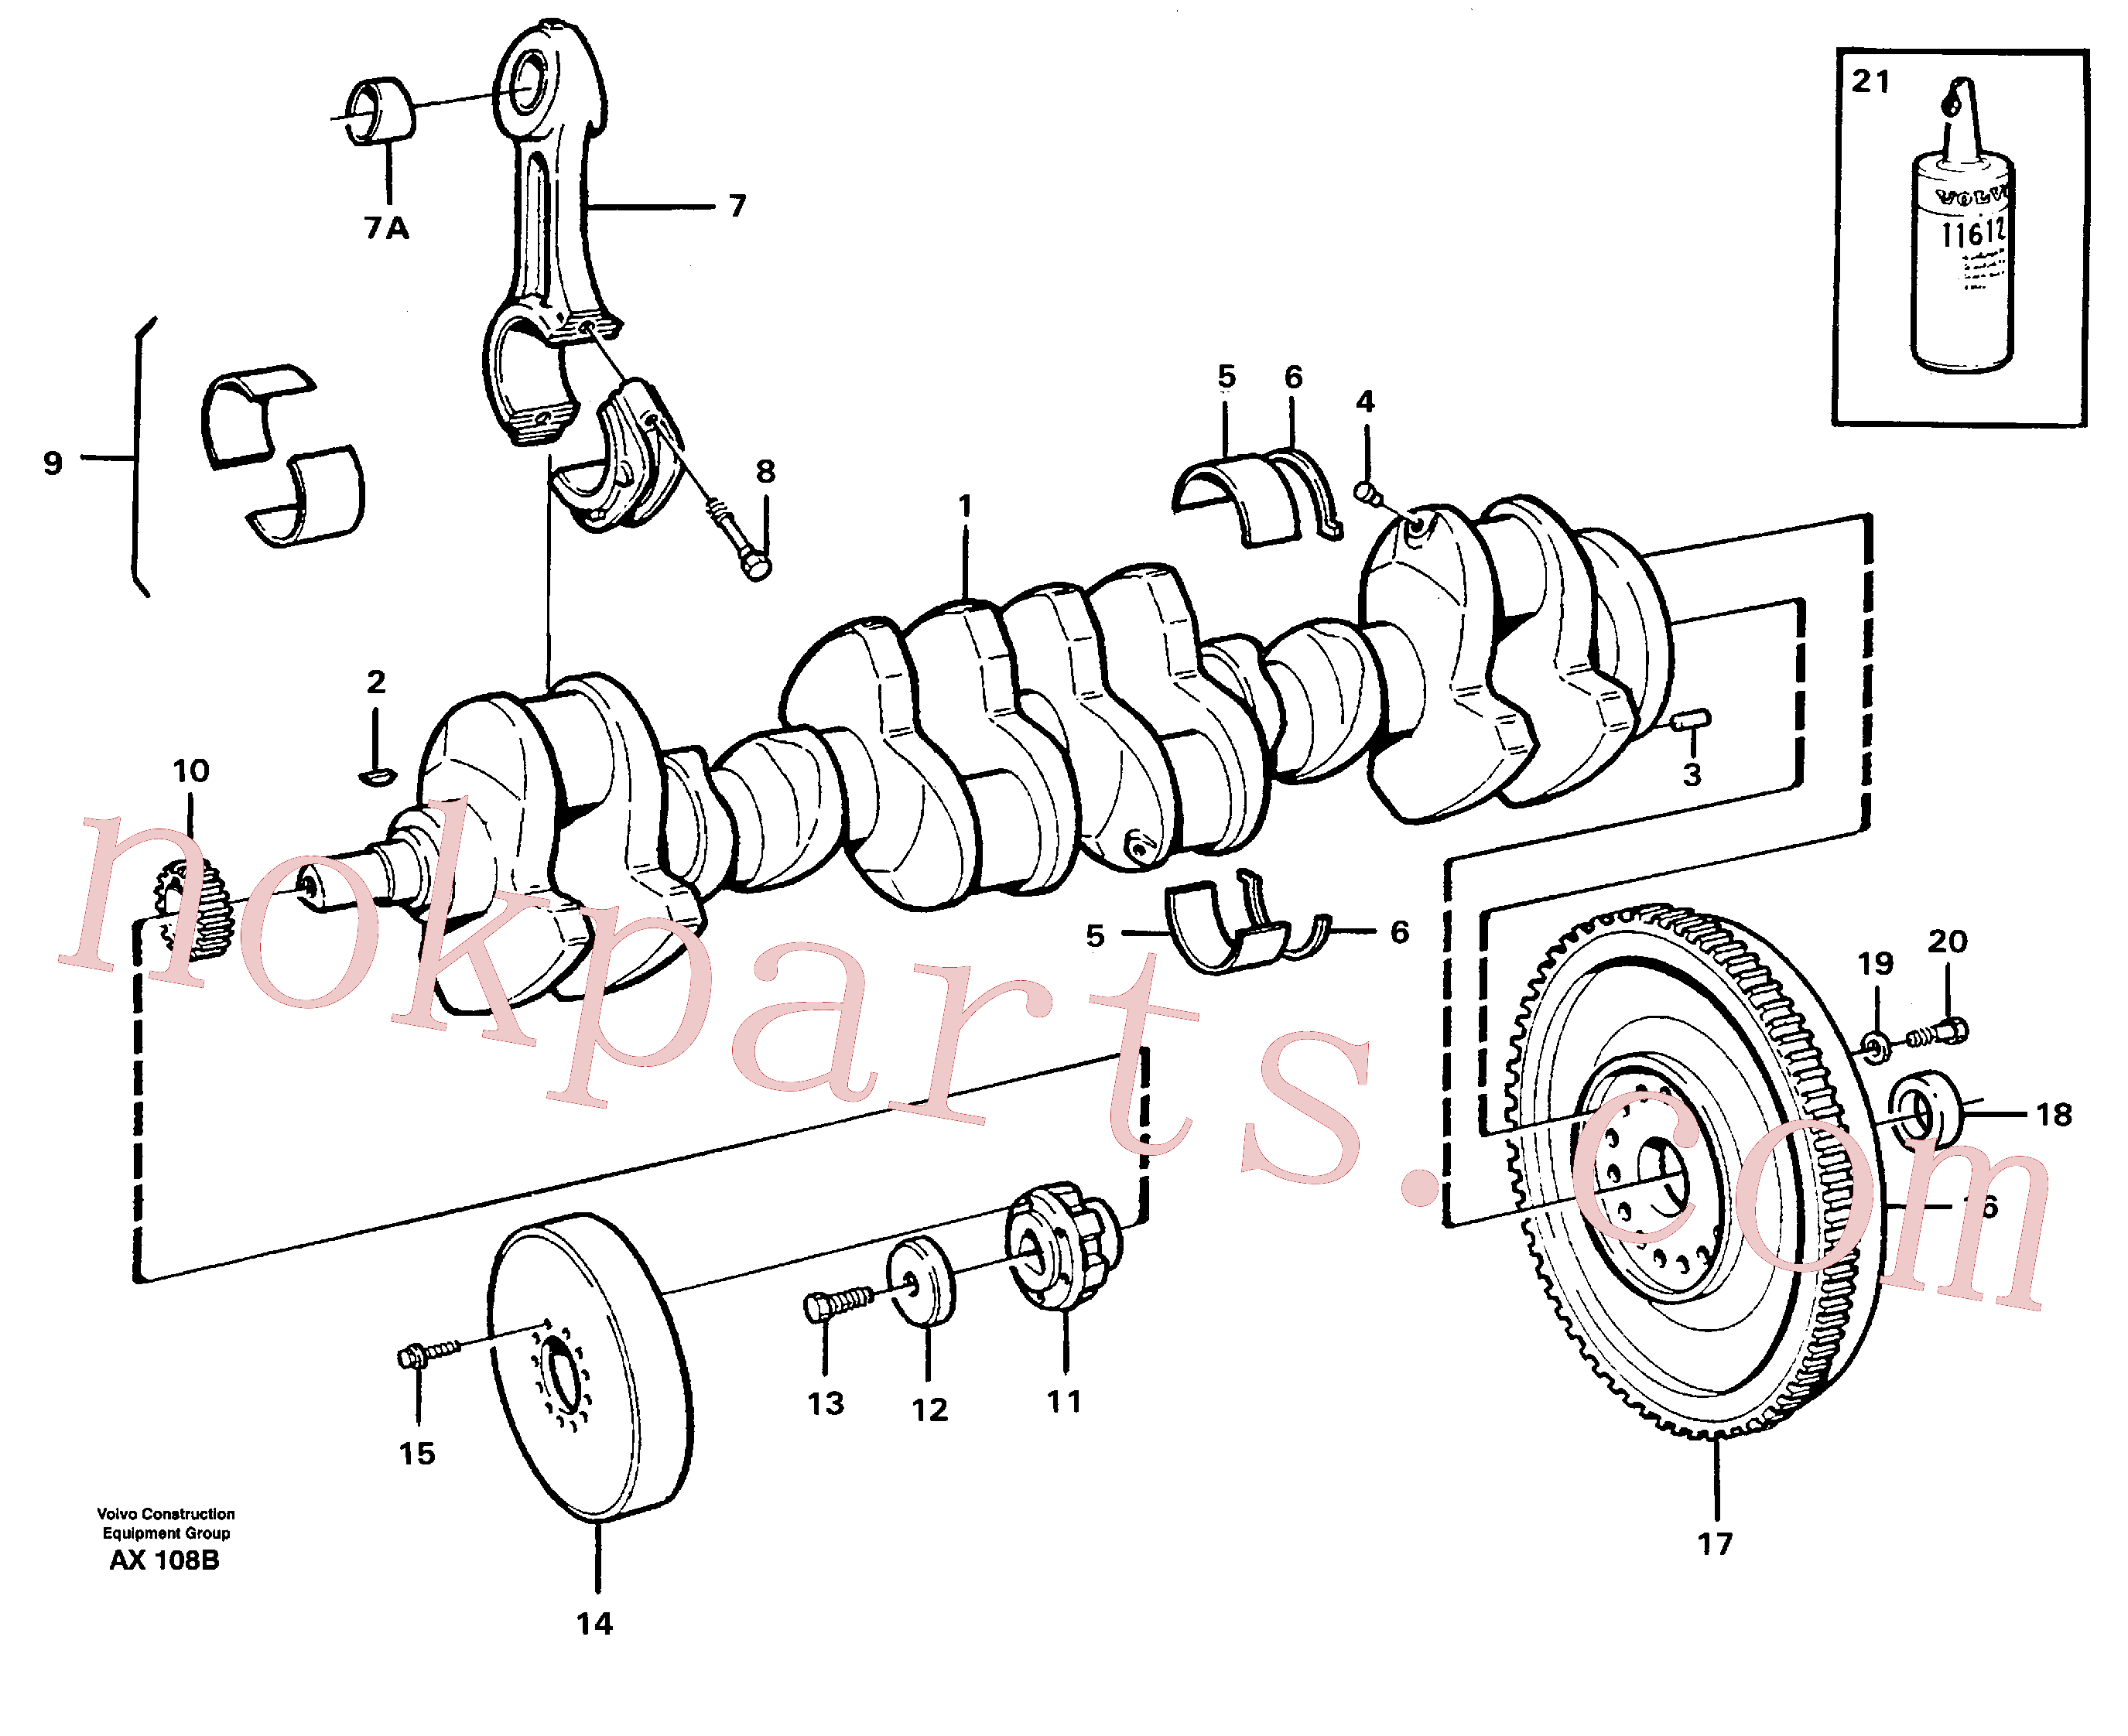 VOE1161231 for Volvo Crankshaft and related parts(AX108B assembly)